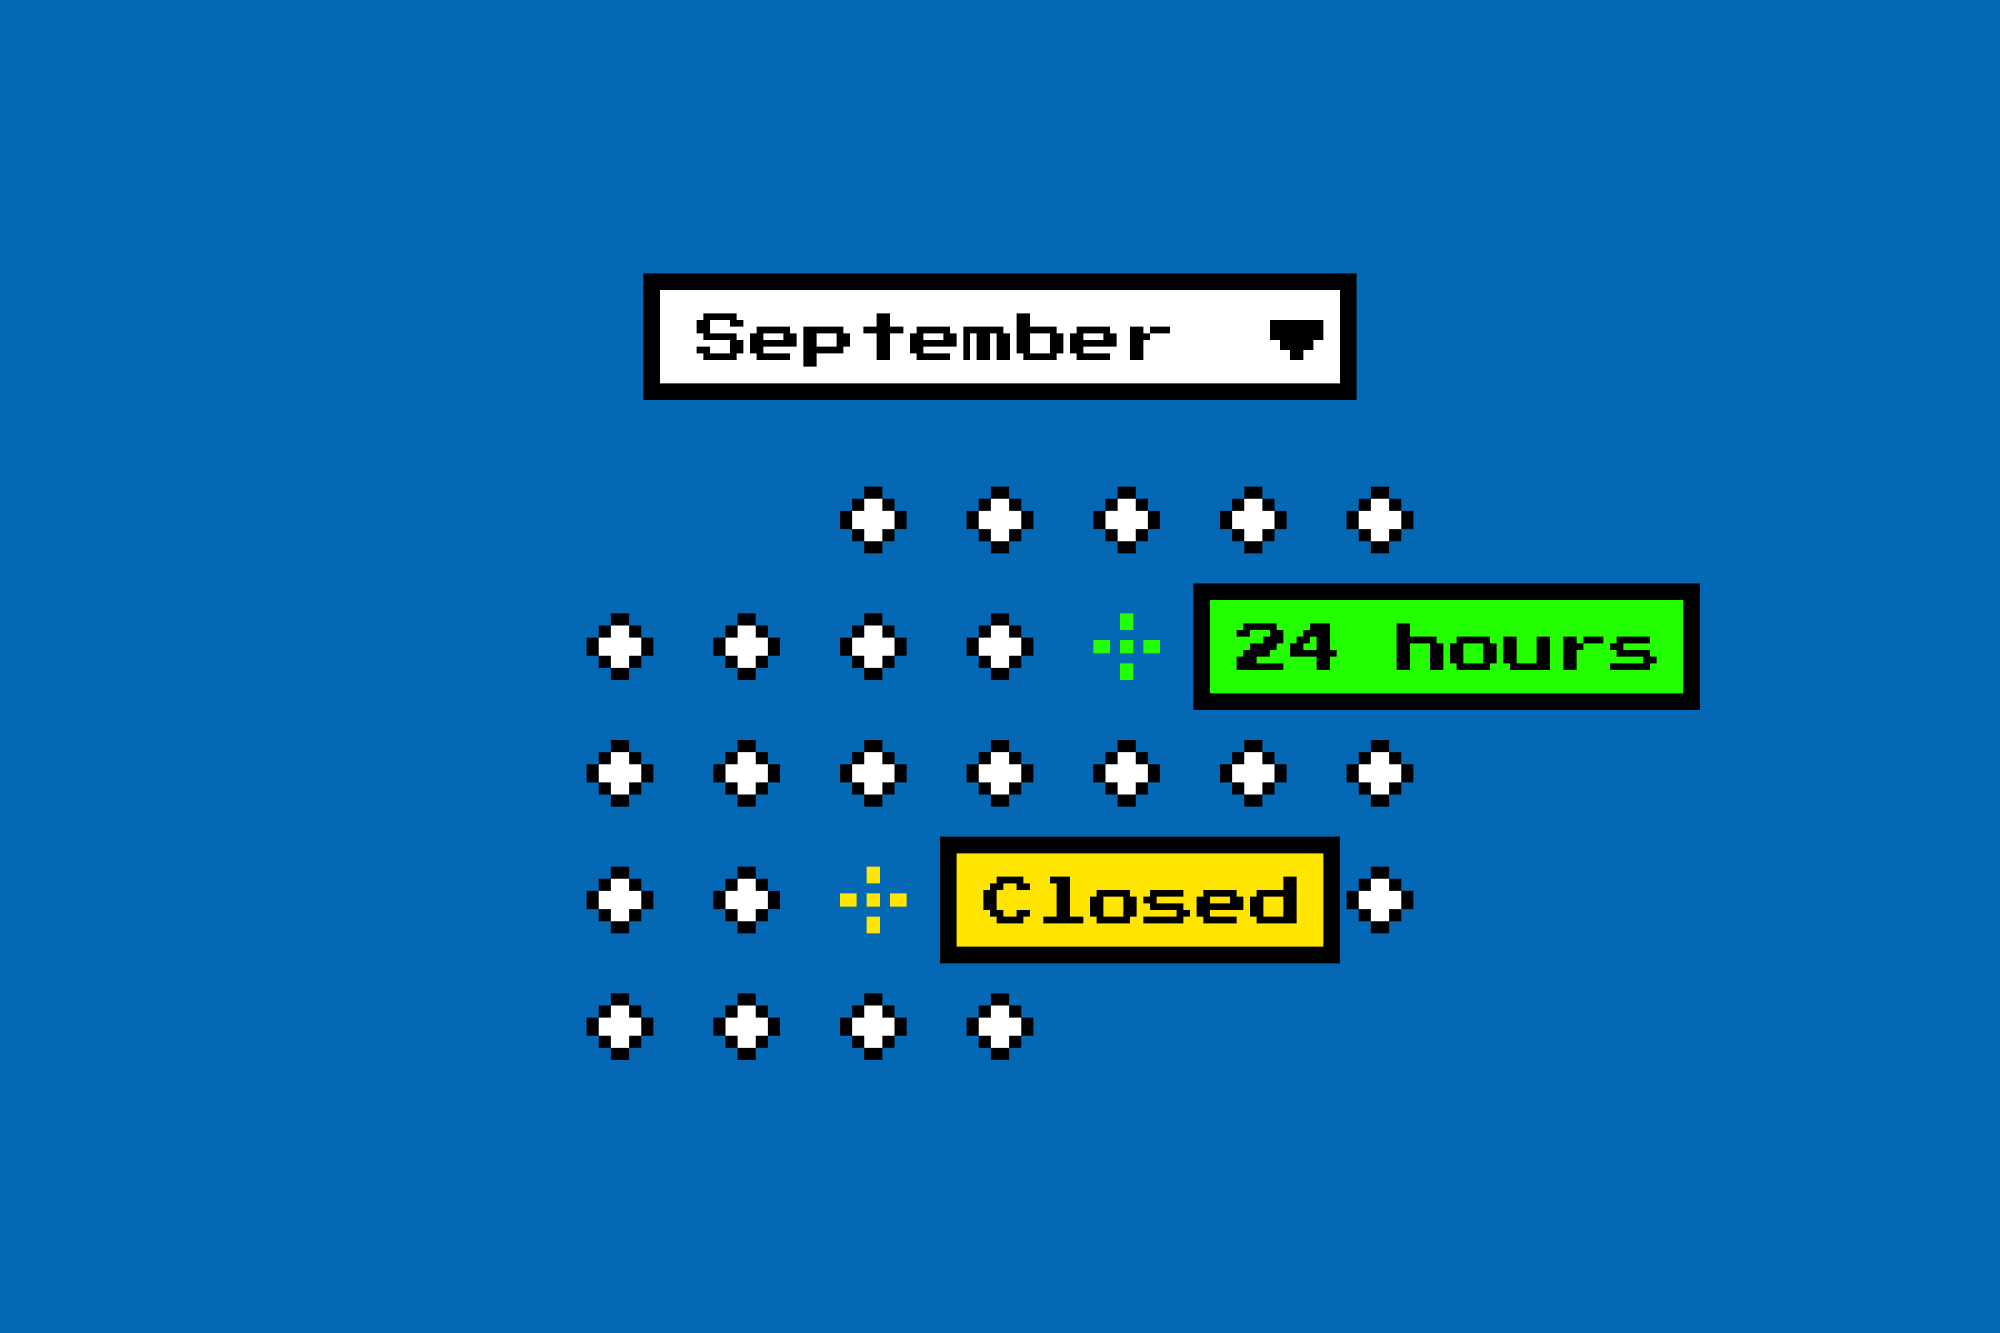 Fun visualization of a calendar of hours of operation.